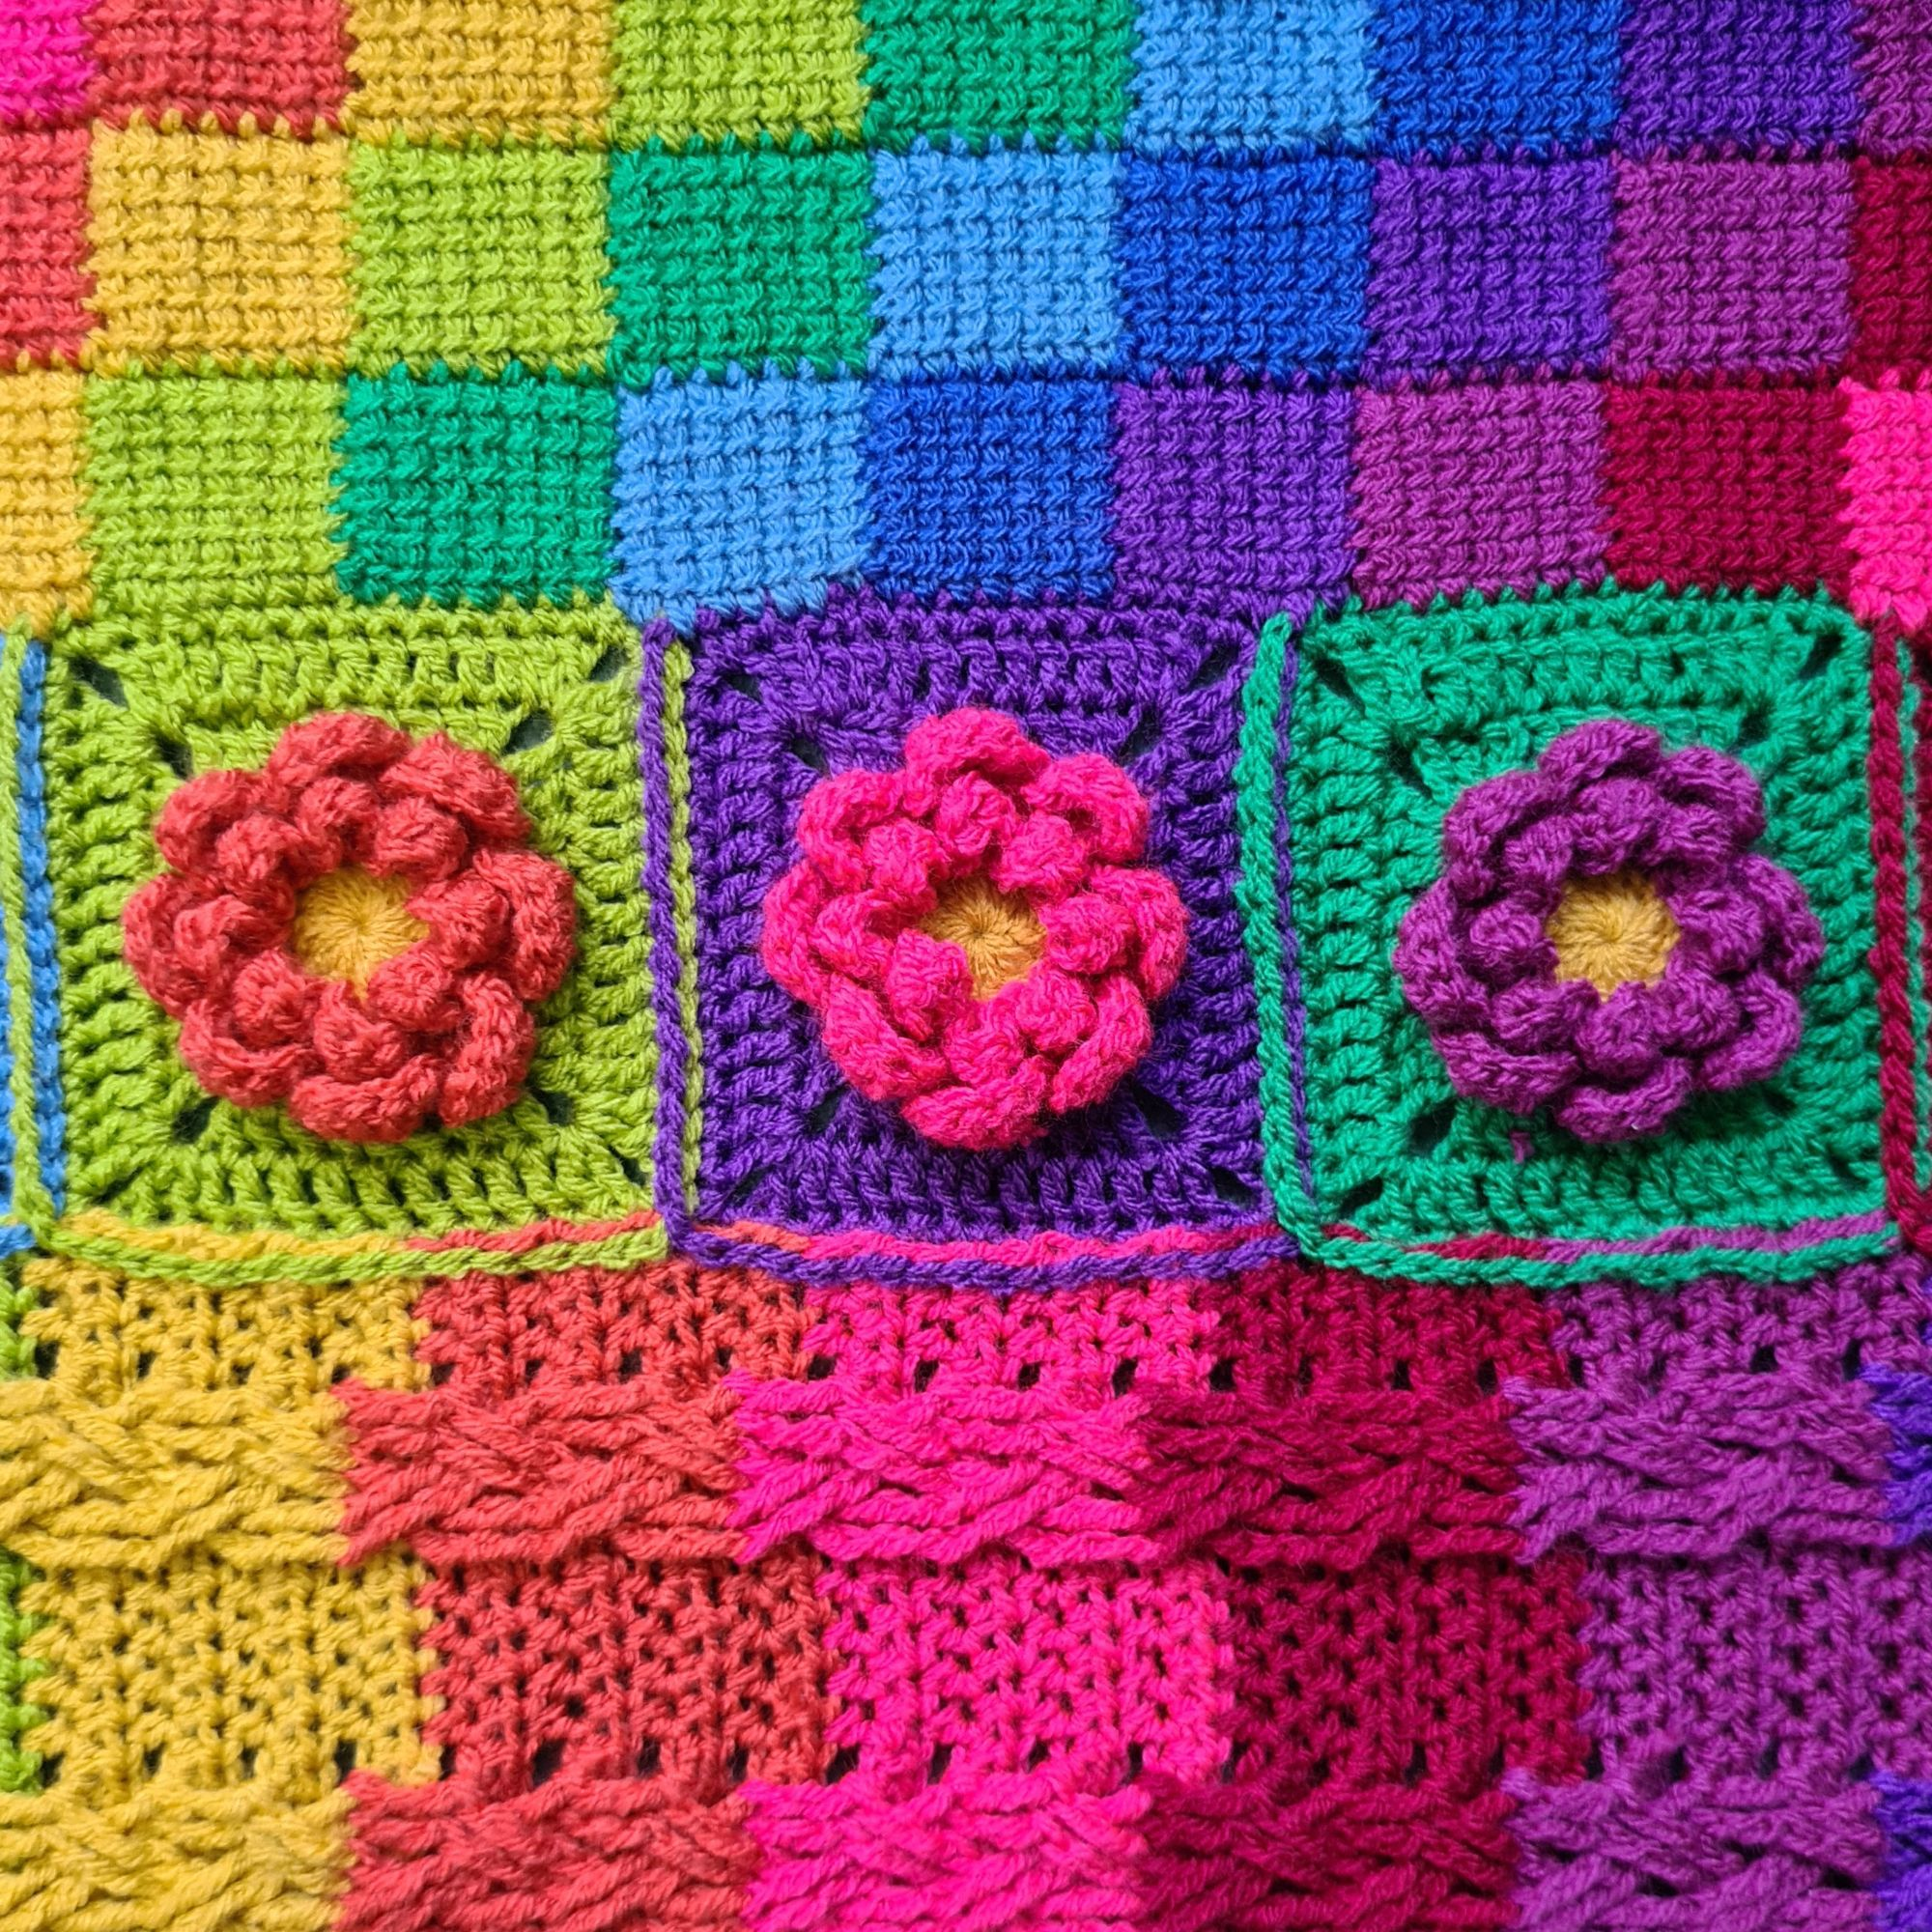 Diana Bensted - Crochet masterclass 7 cables - 8 Flower - 9 Tunisian entrel